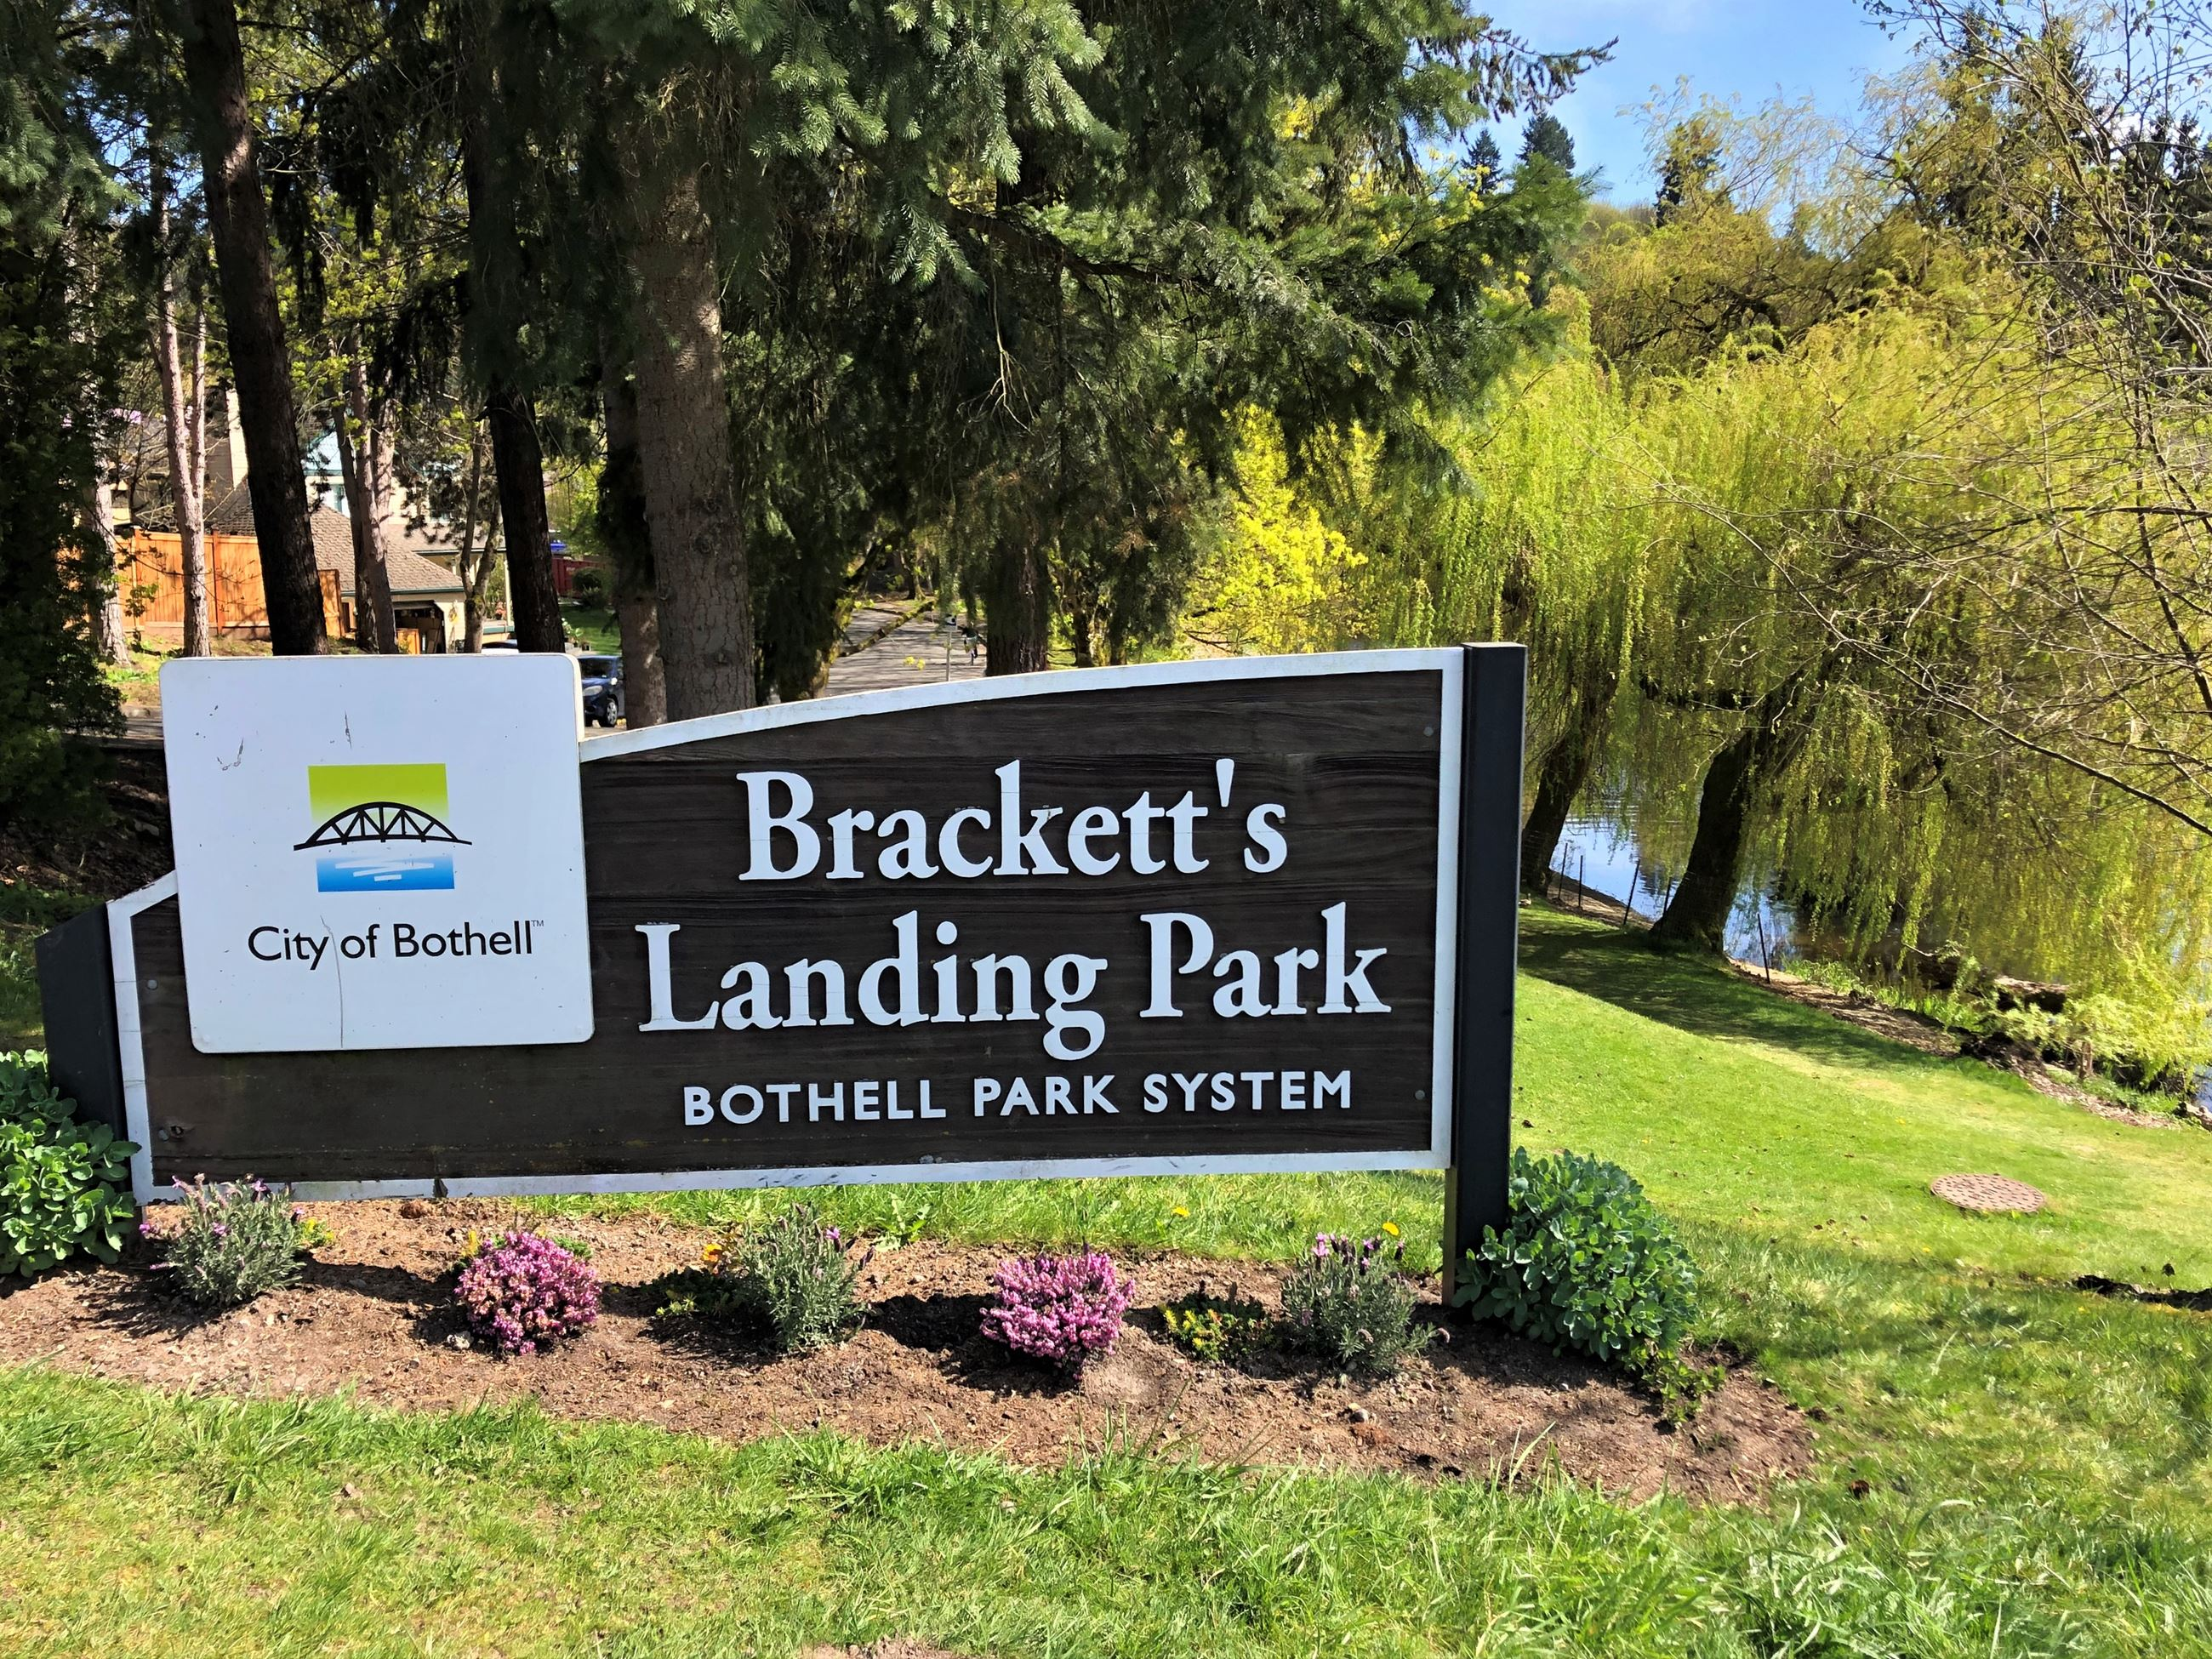 Bracketts Landing Park sign